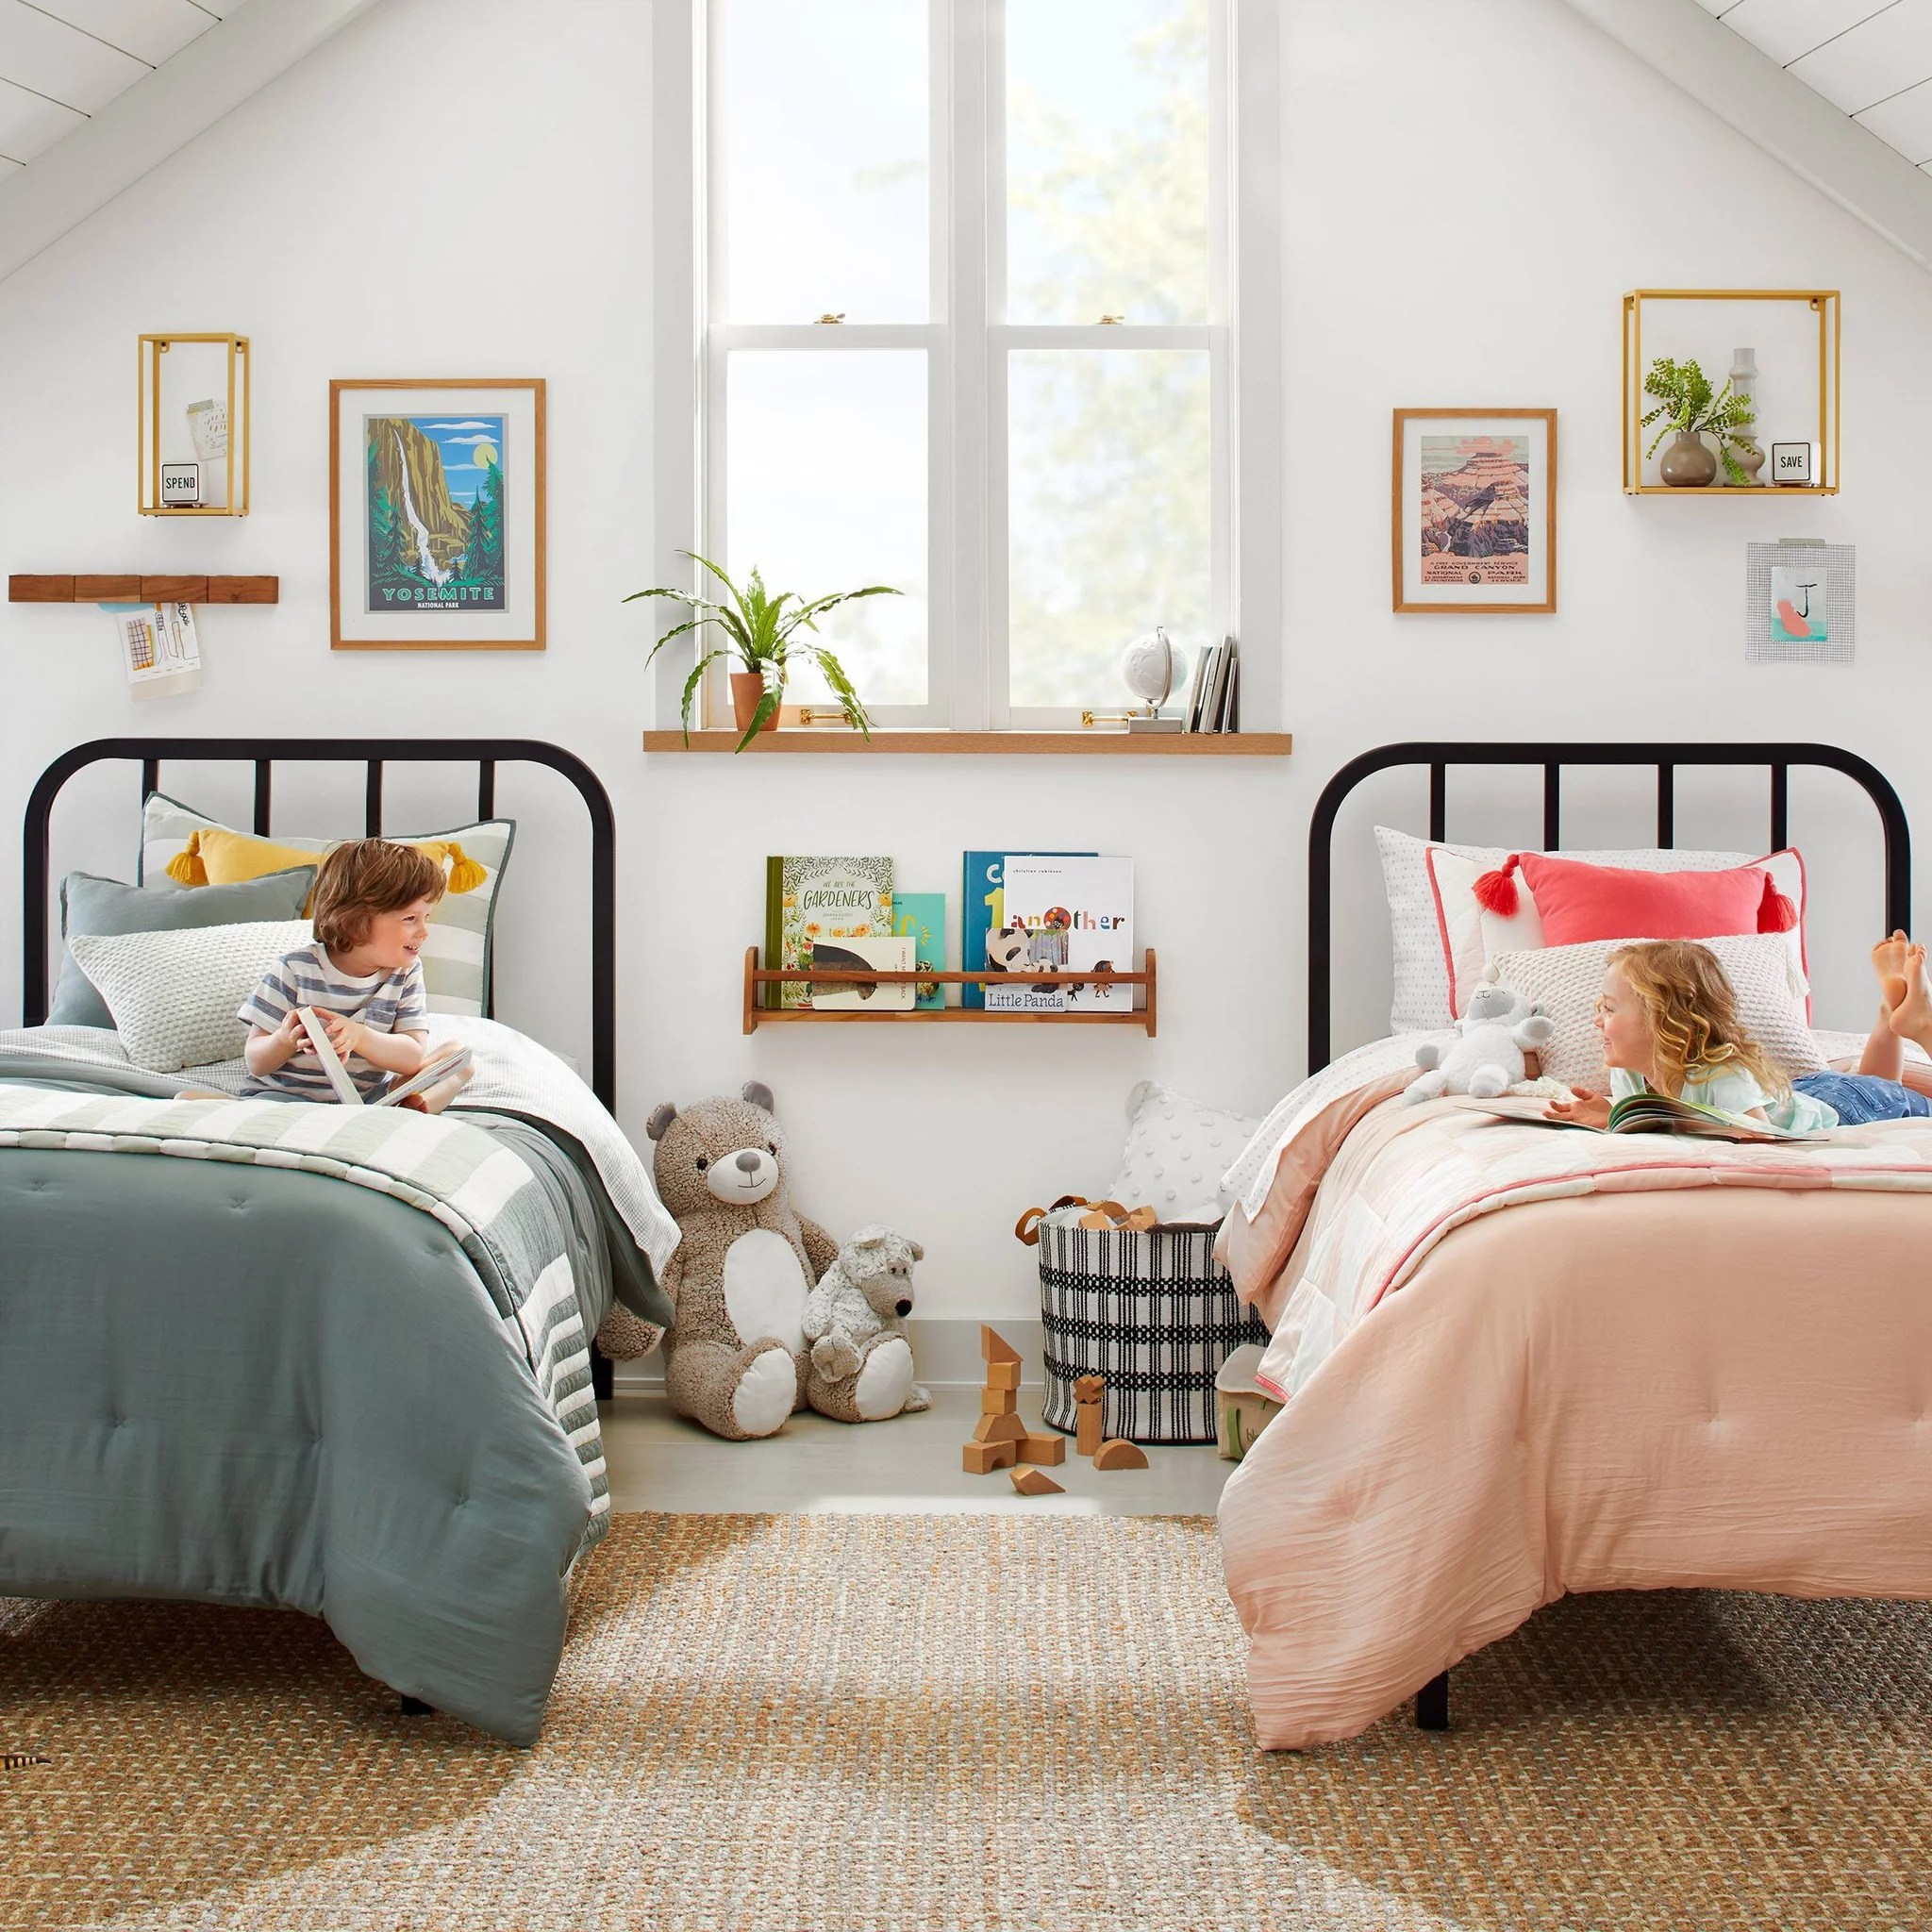 Kids Hearth And Hand Bedding And Decor At Target Popsugar Family